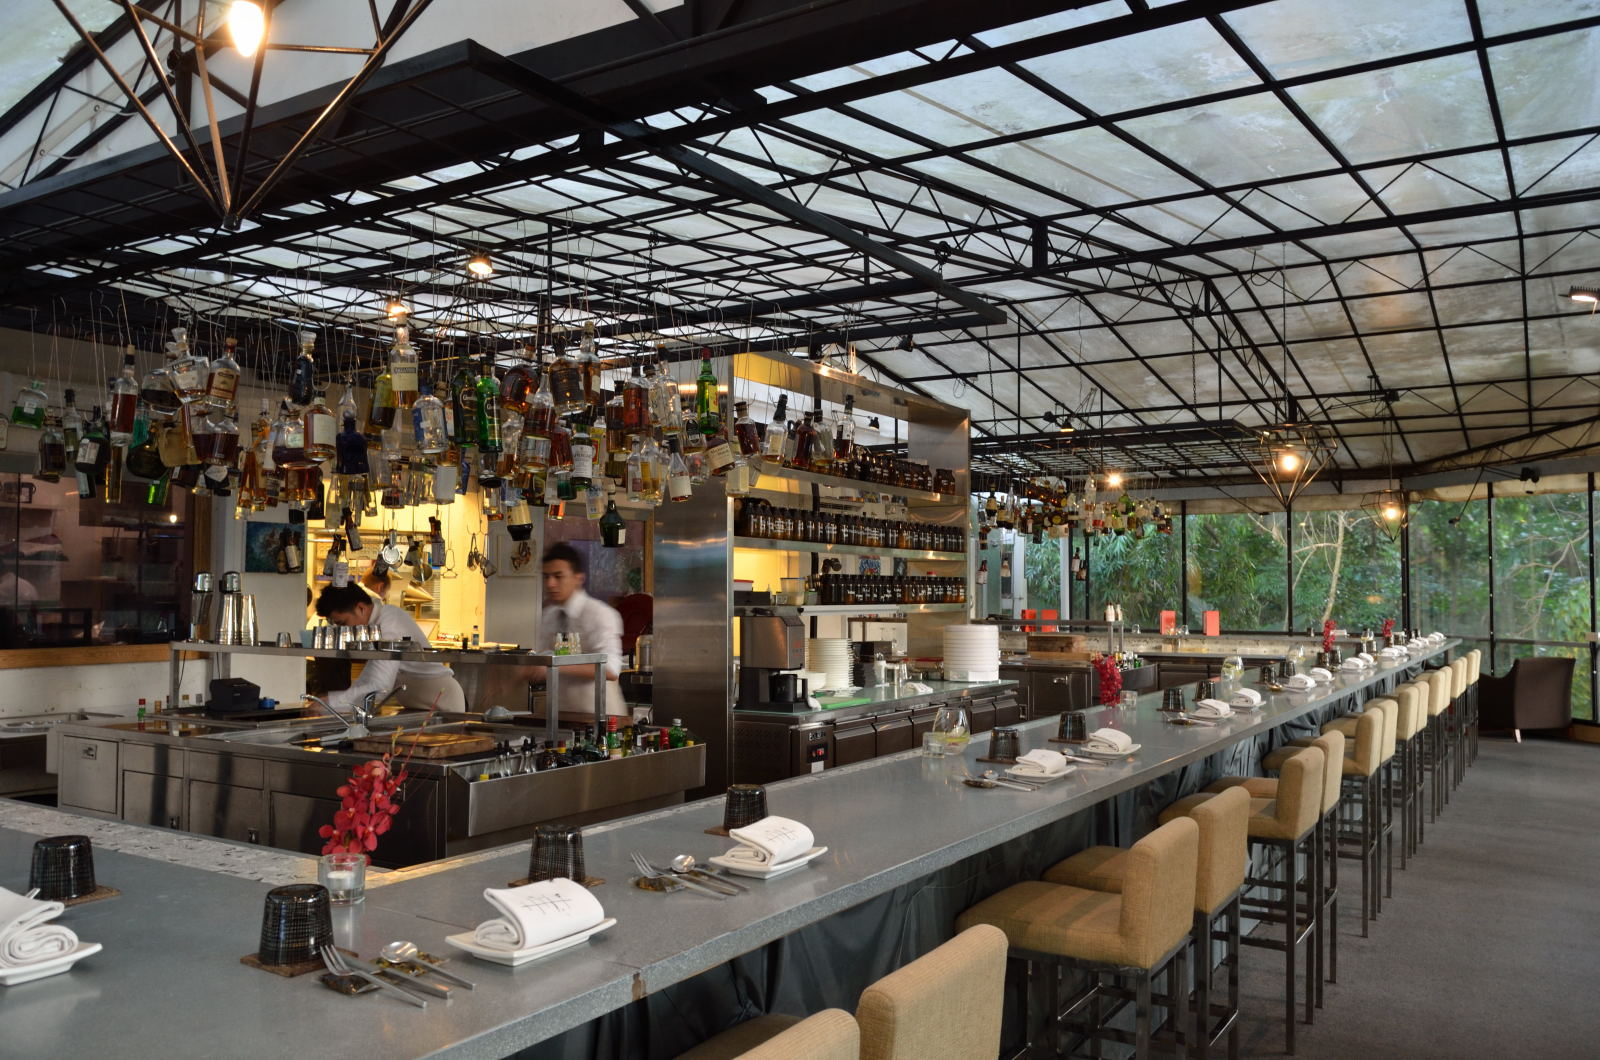 check out the best bars in Singapore whilst on your Singapore sightseeing - we know all of the best spots!